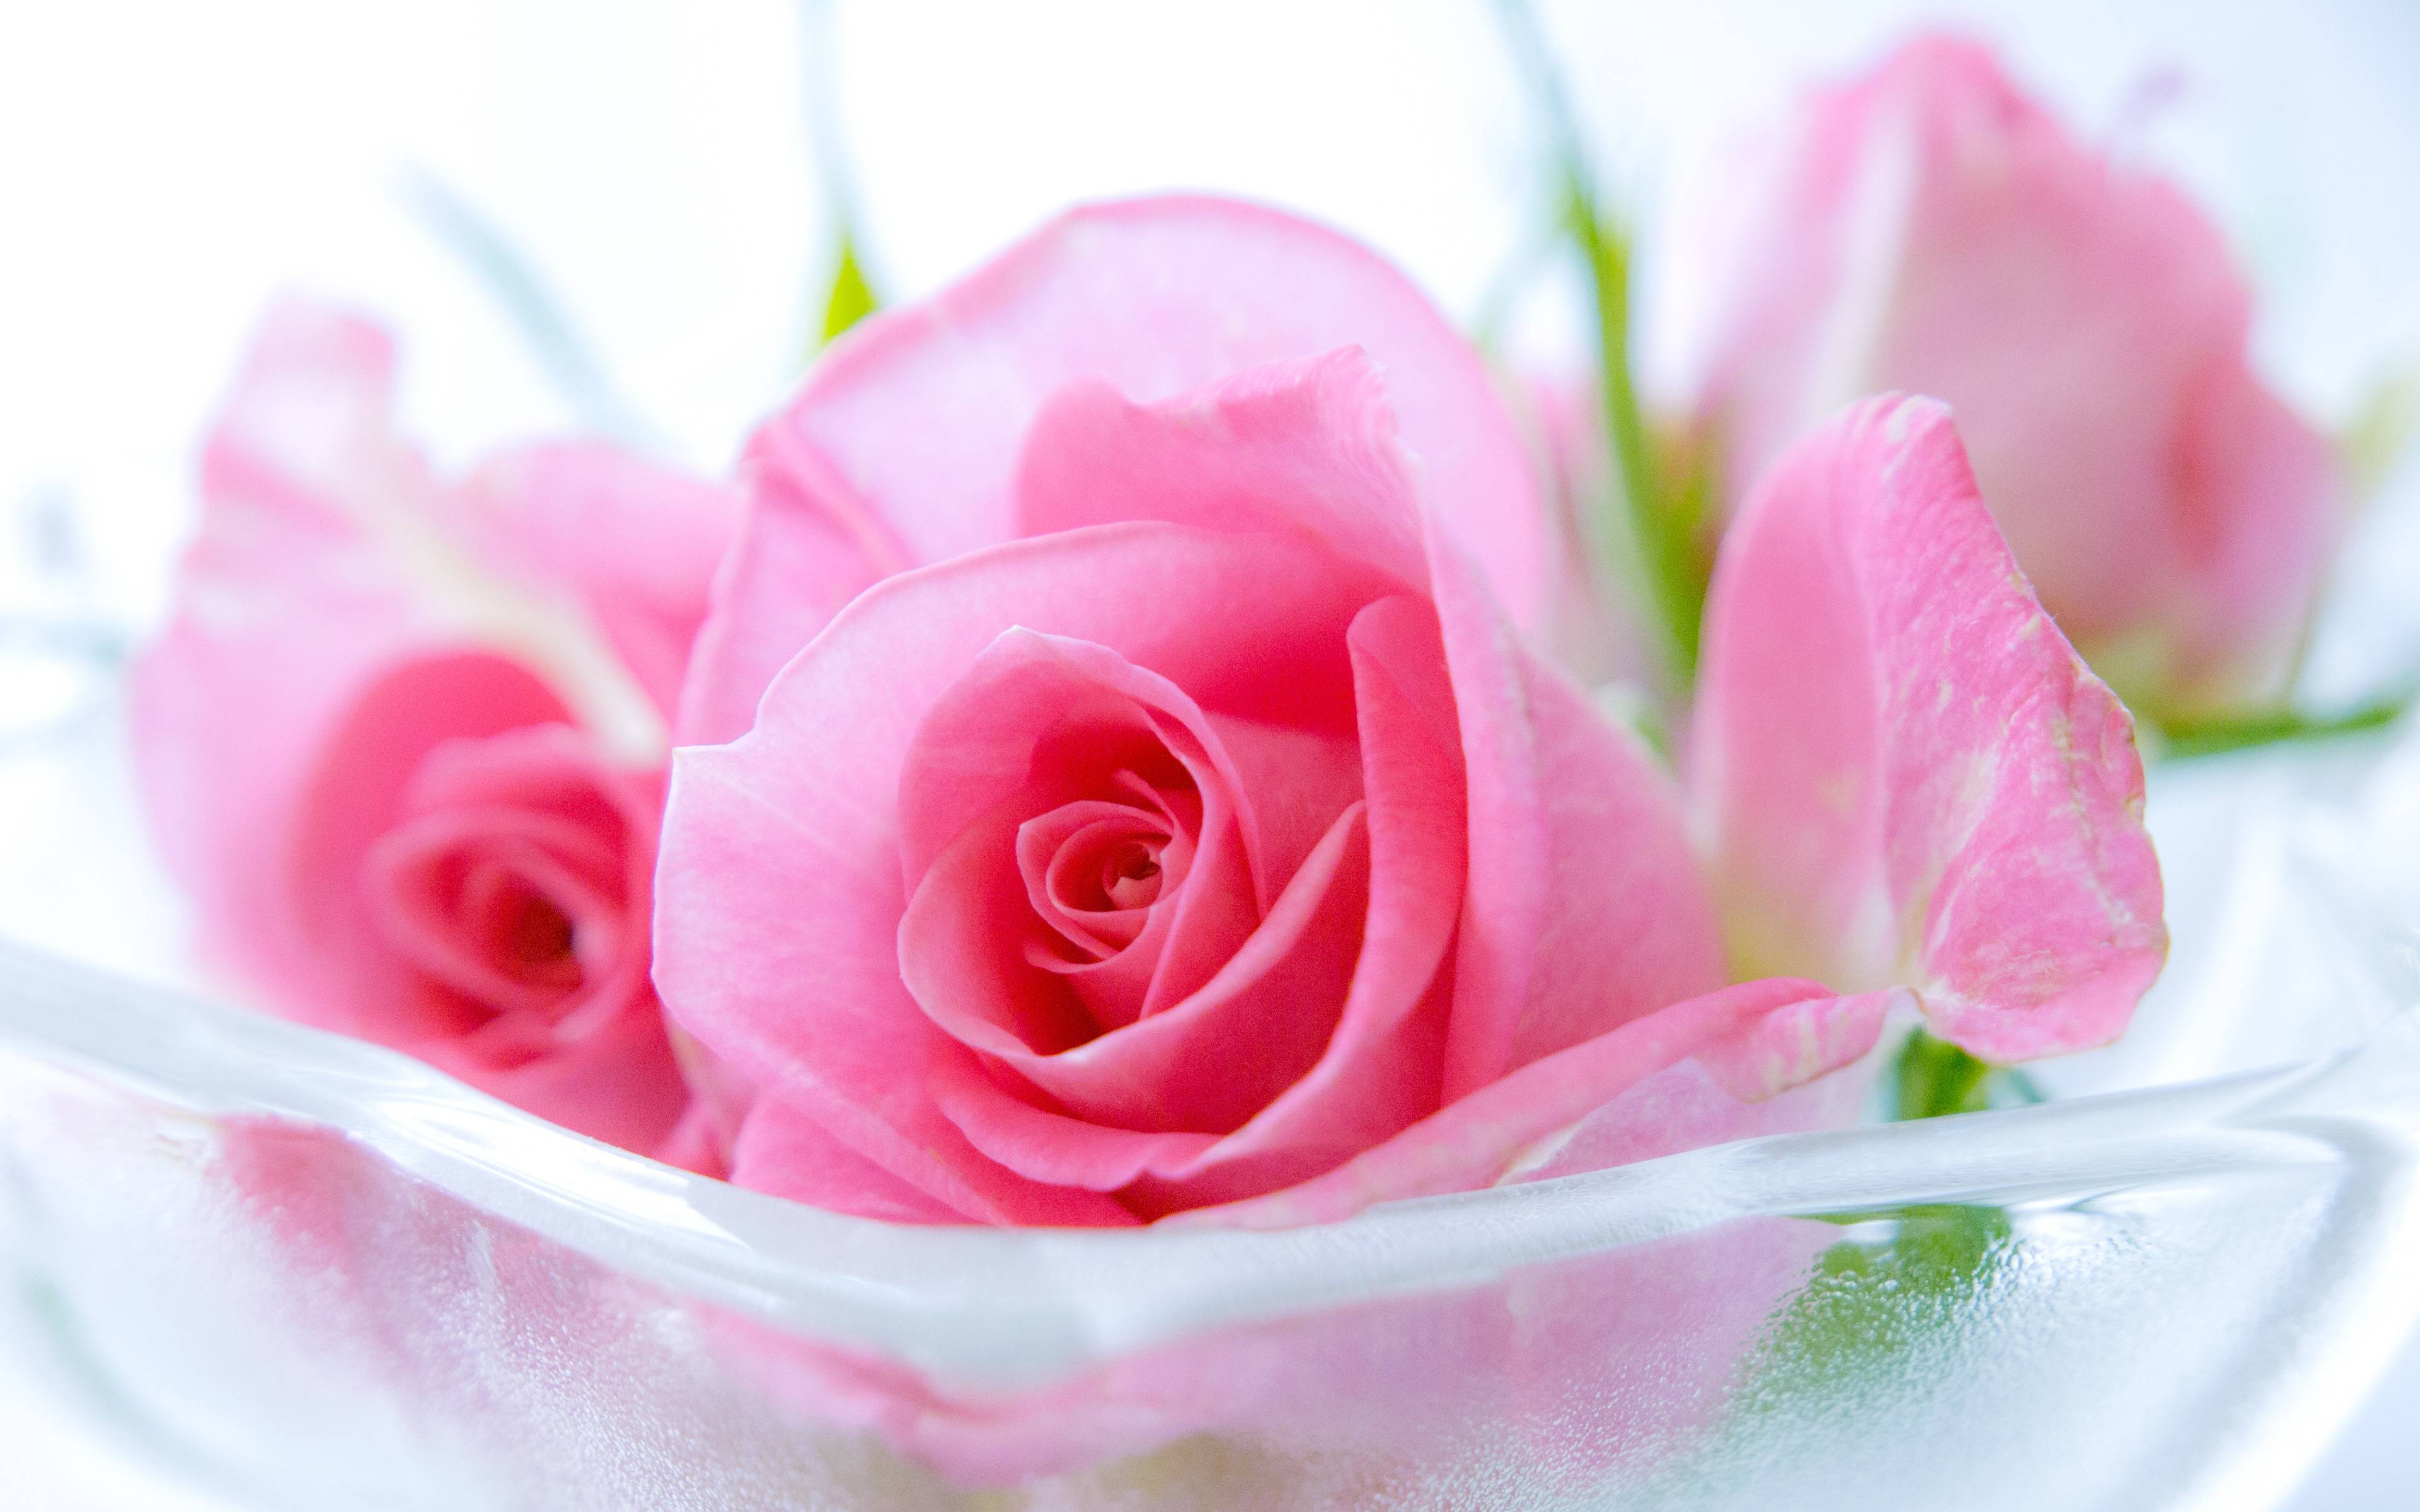 Pink rose wallpapers wallpaper cave - Pink roses background hd ...